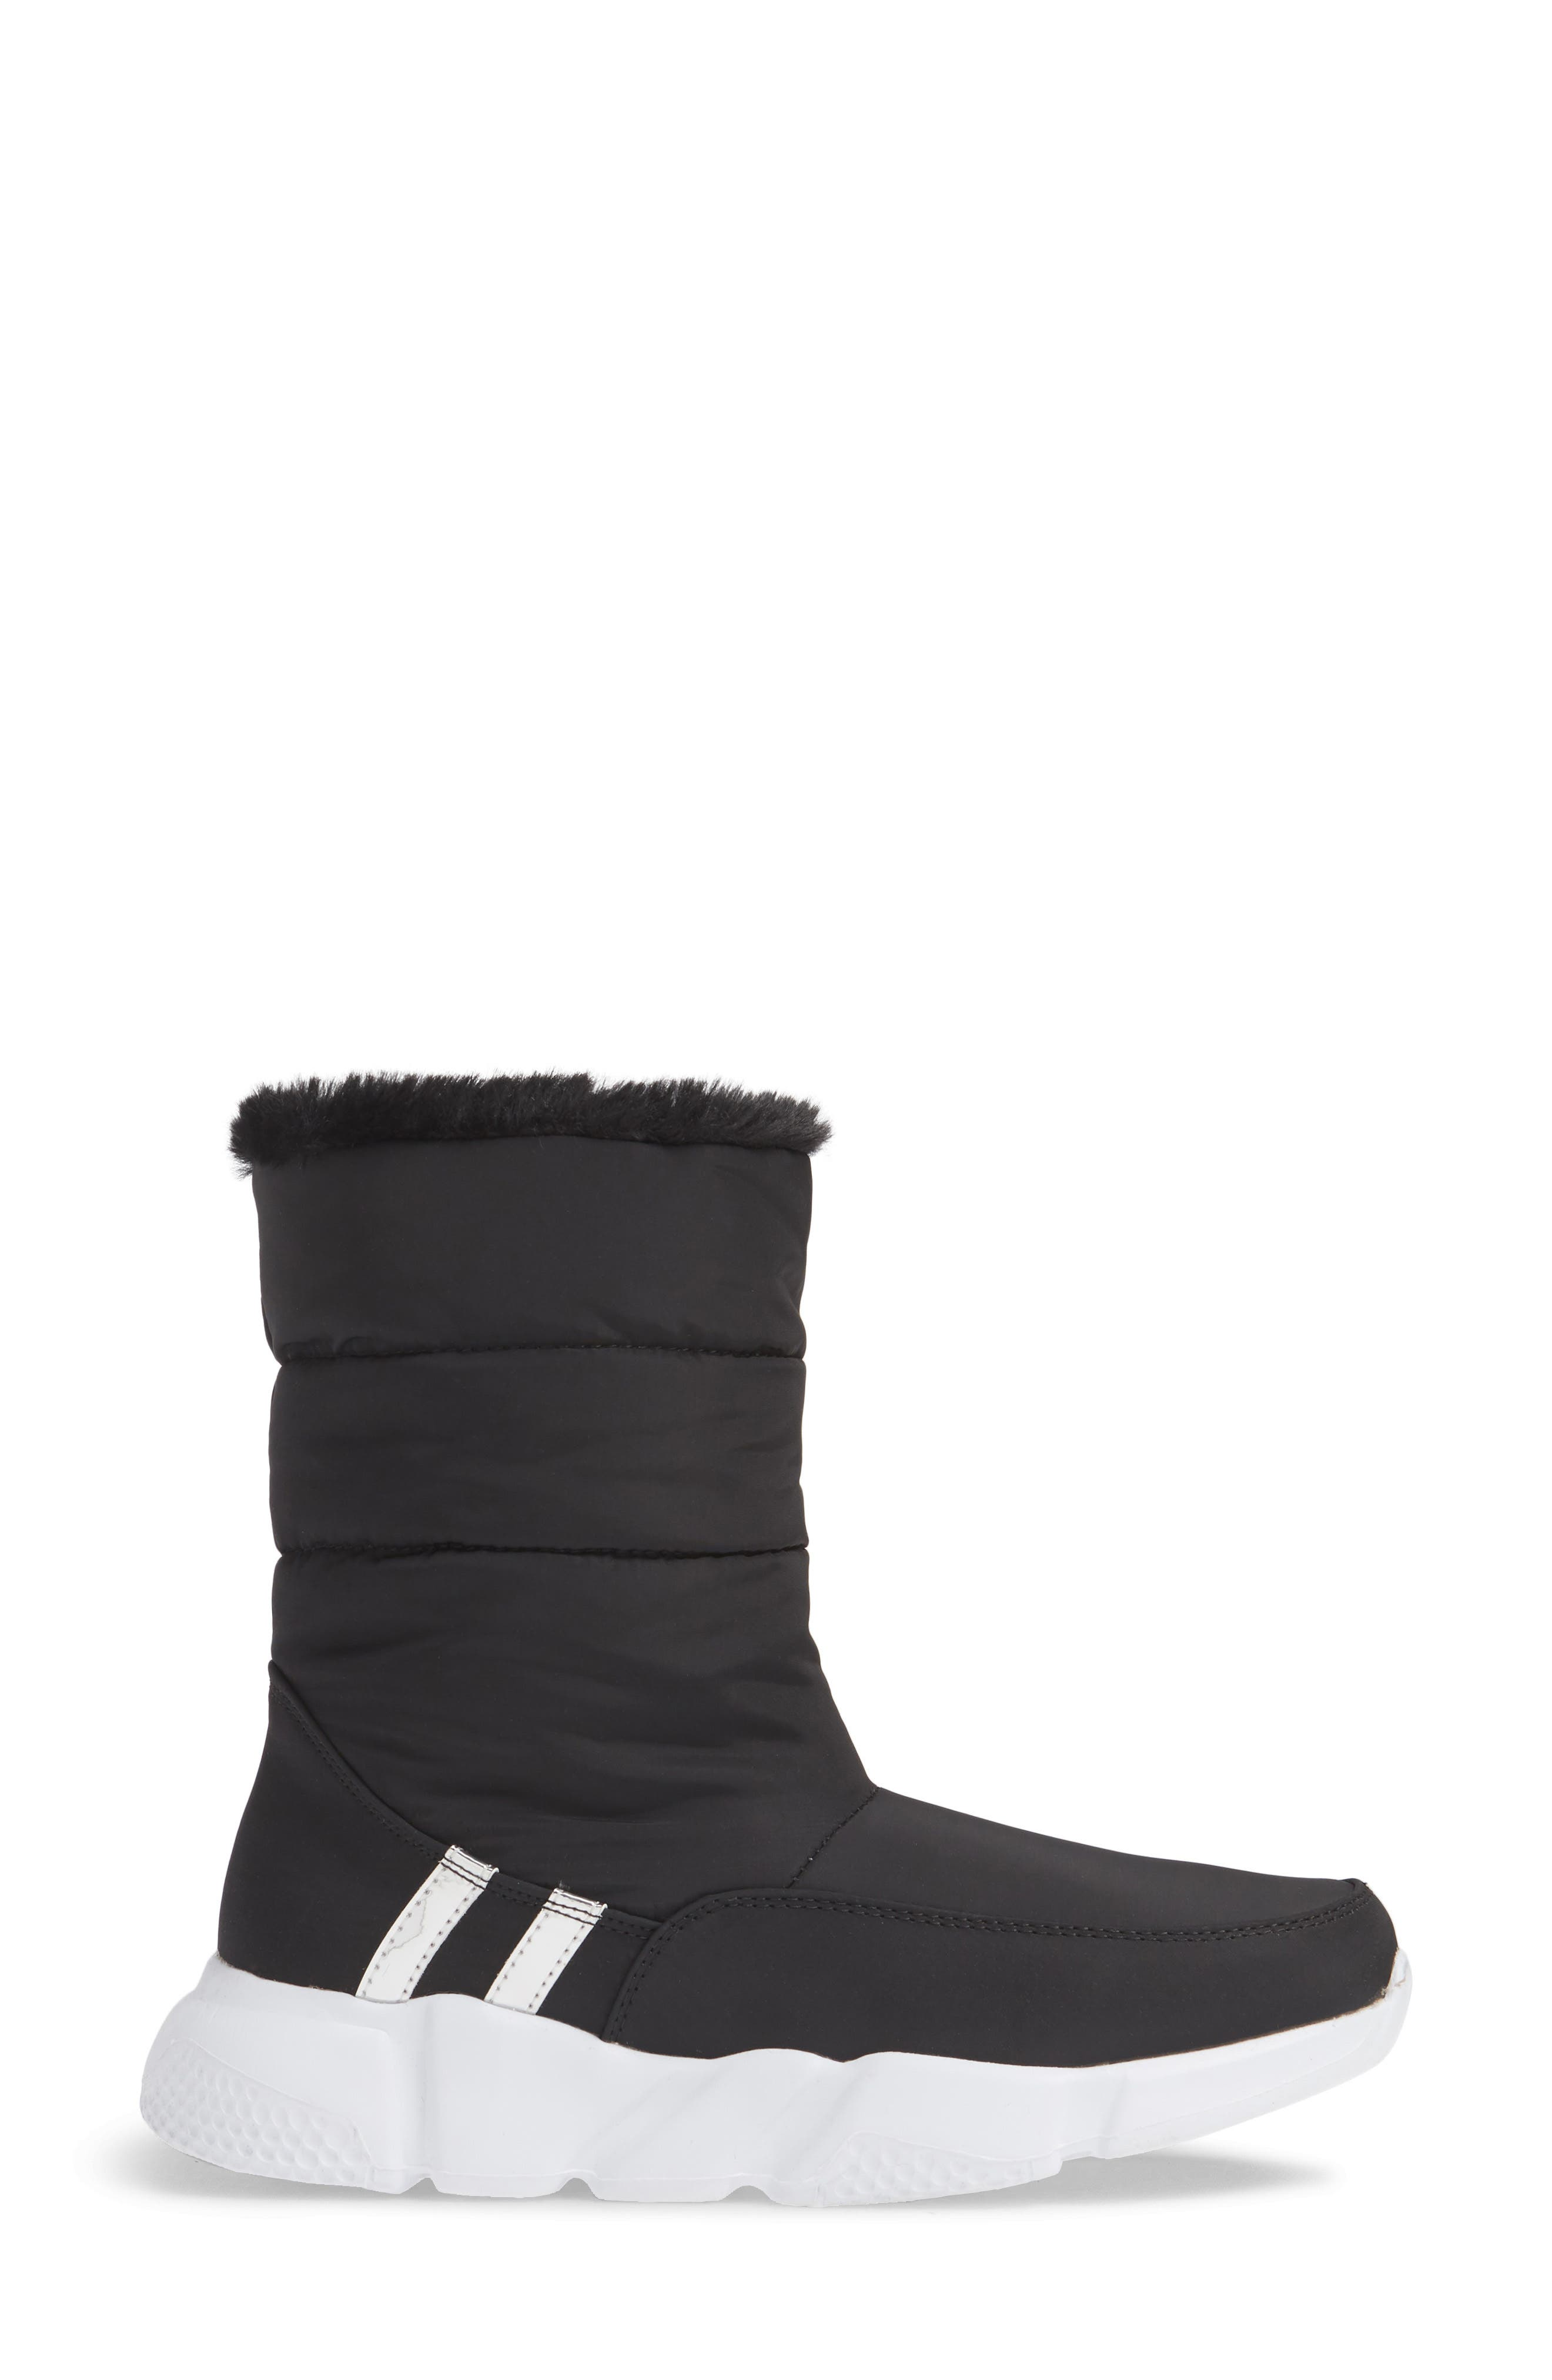 STEVE MADDEN,                             Snowday Faux Fur Lined Boot,                             Alternate thumbnail 3, color,                             BLACK